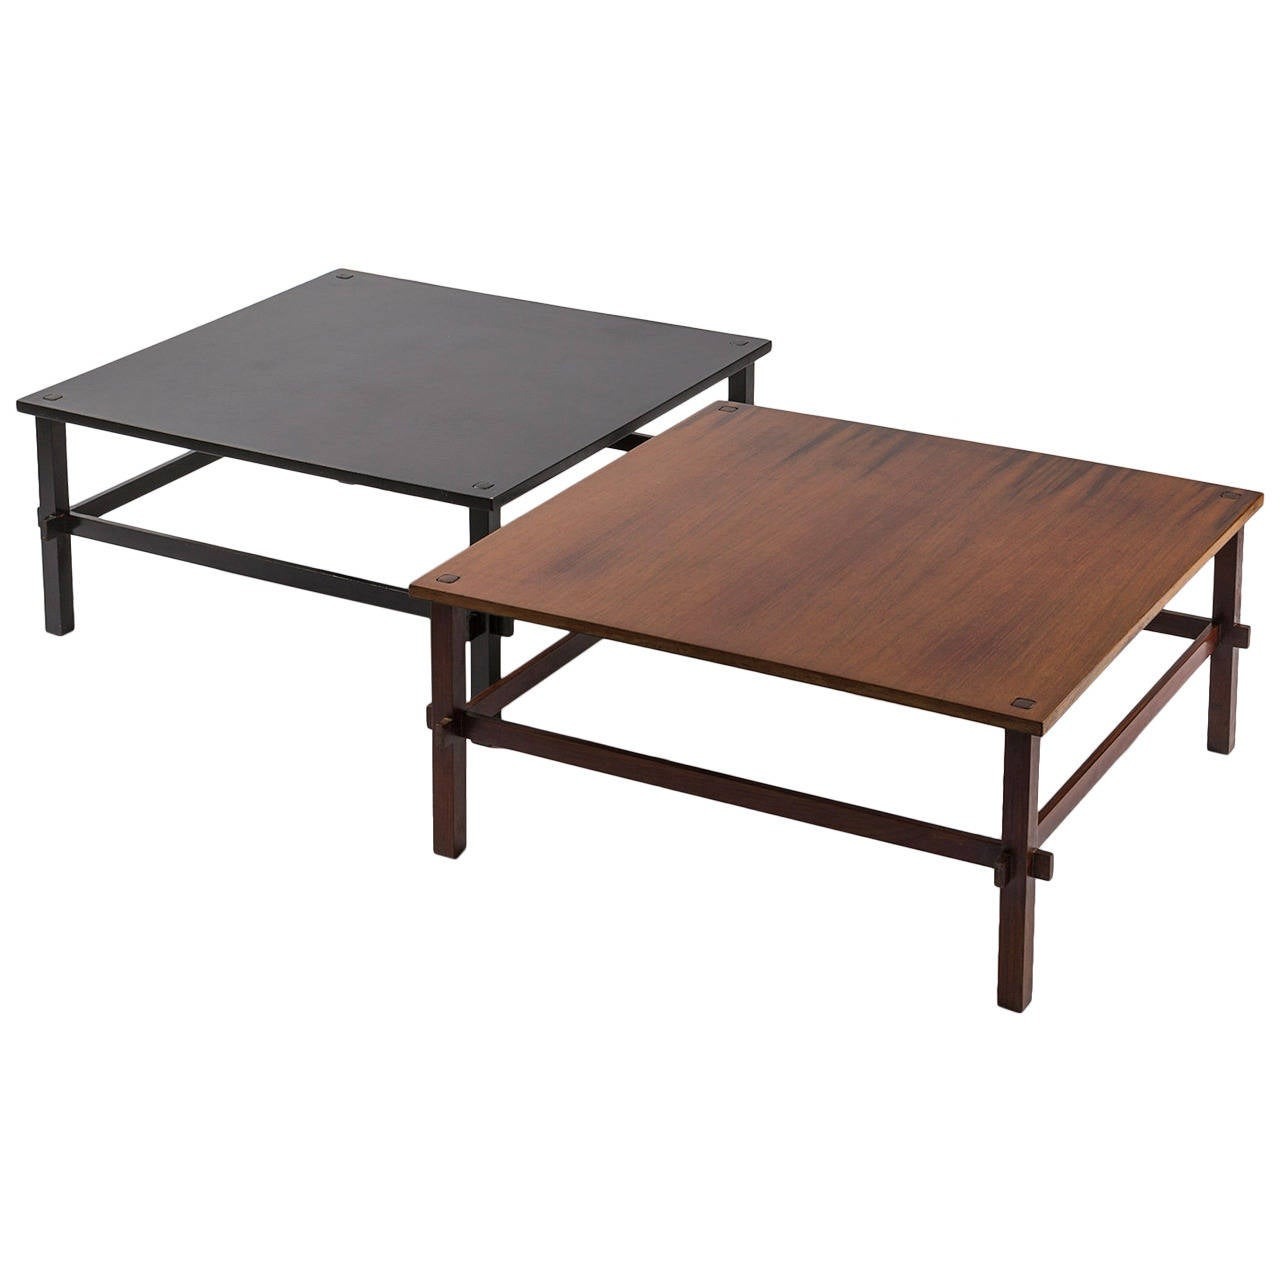 Pair Of Coffee Tables Model 740 By Gianfranco Frattini For